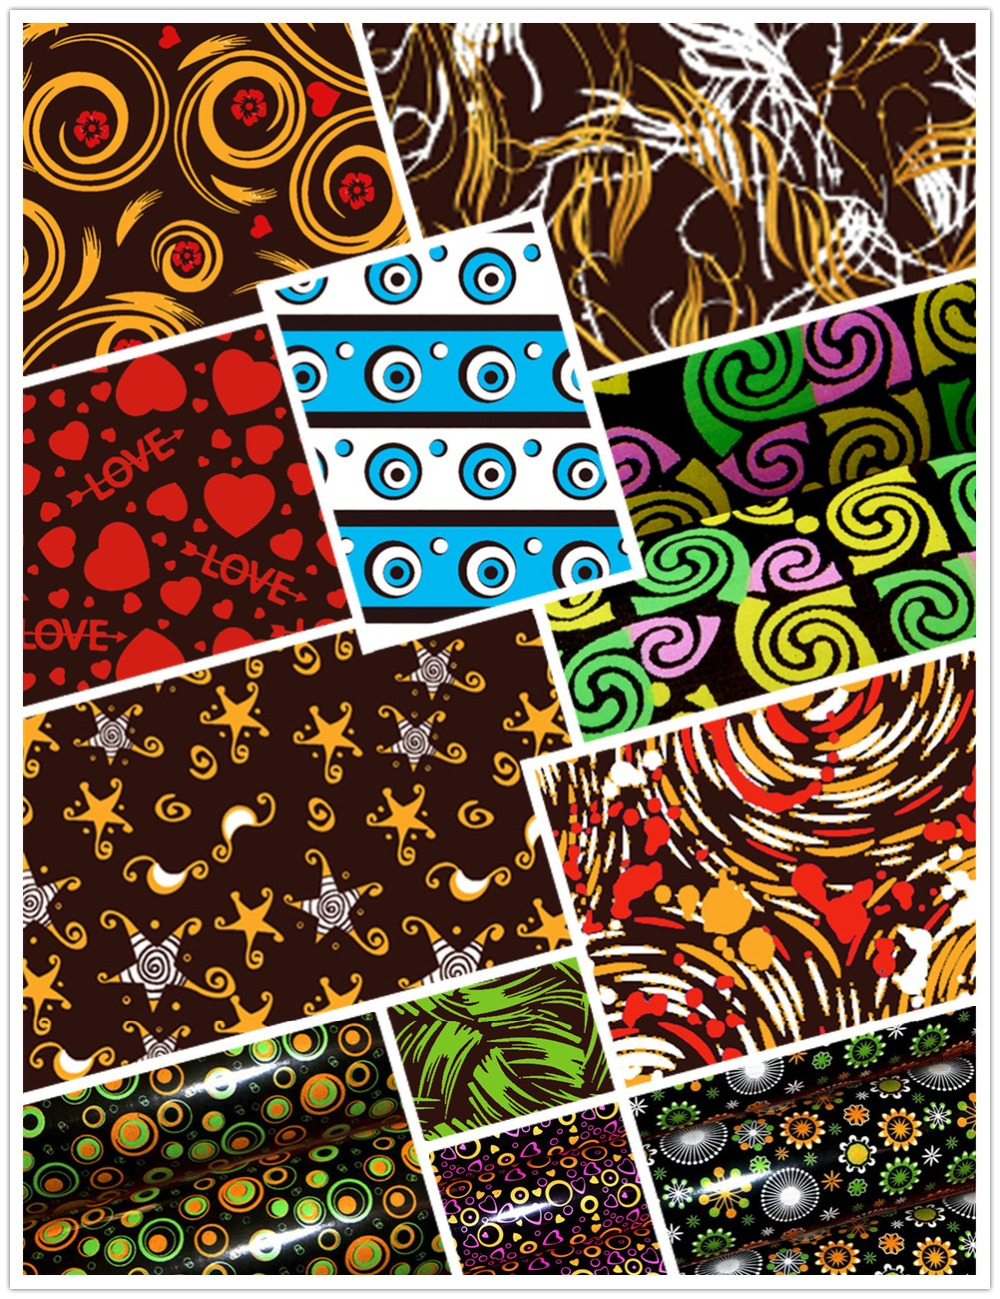 Chocolate Transfer Sheet 10 Printed Different Design Mix Molds Decoration Edible Plastic Paper  Popular Cake Cookie  Baking DIY